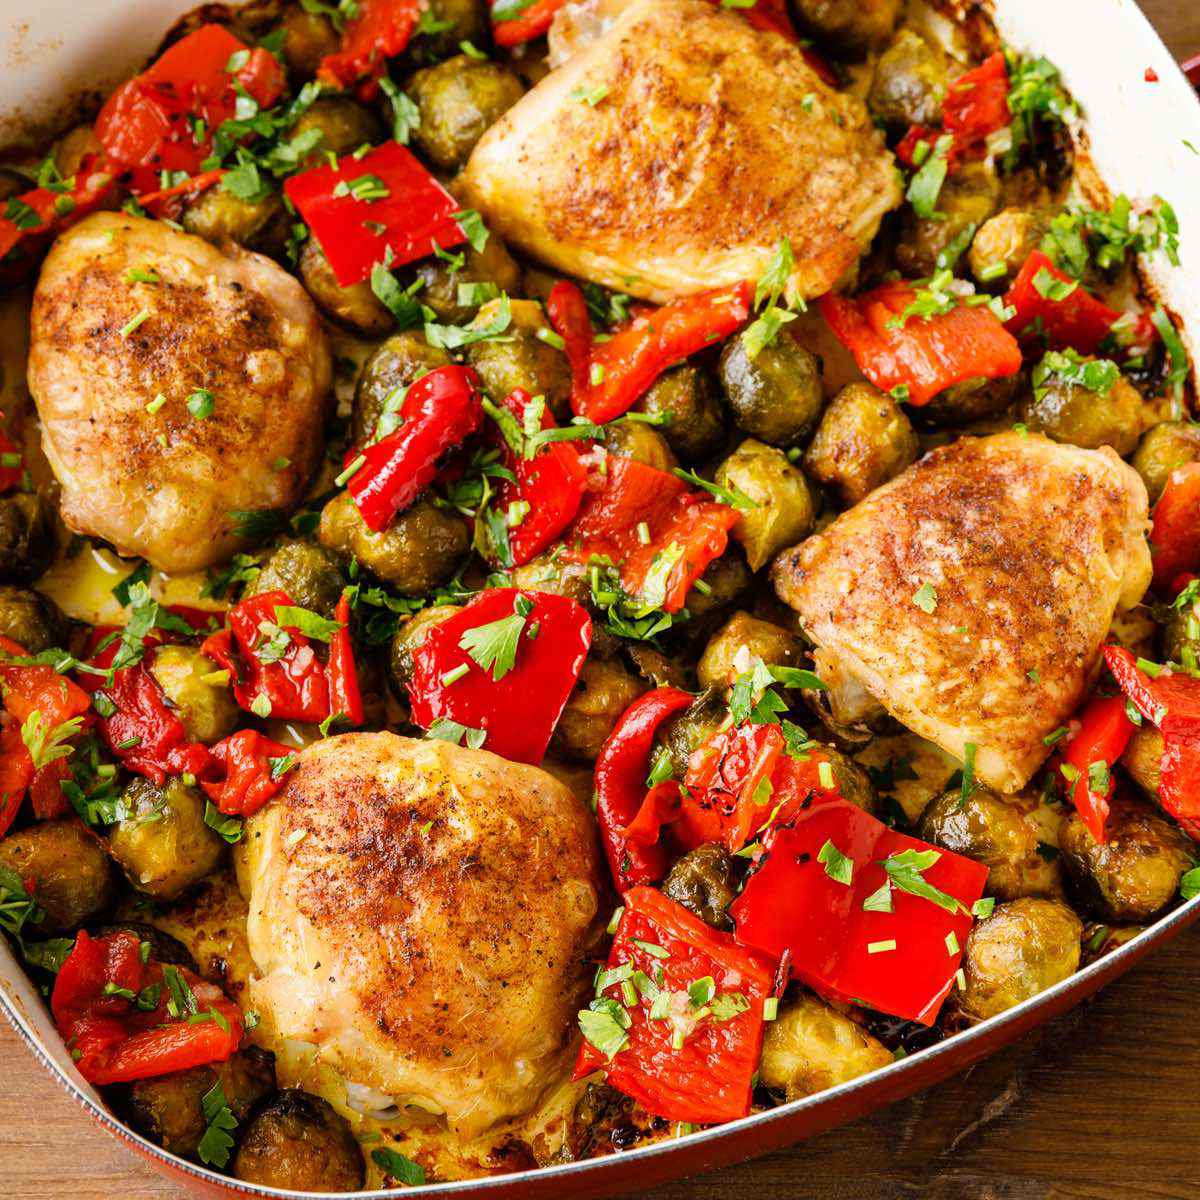 Roasted Chicken Thighs With Peppers Potatoes Recipe: One Pan Chicken Thighs With Roasted Peppers